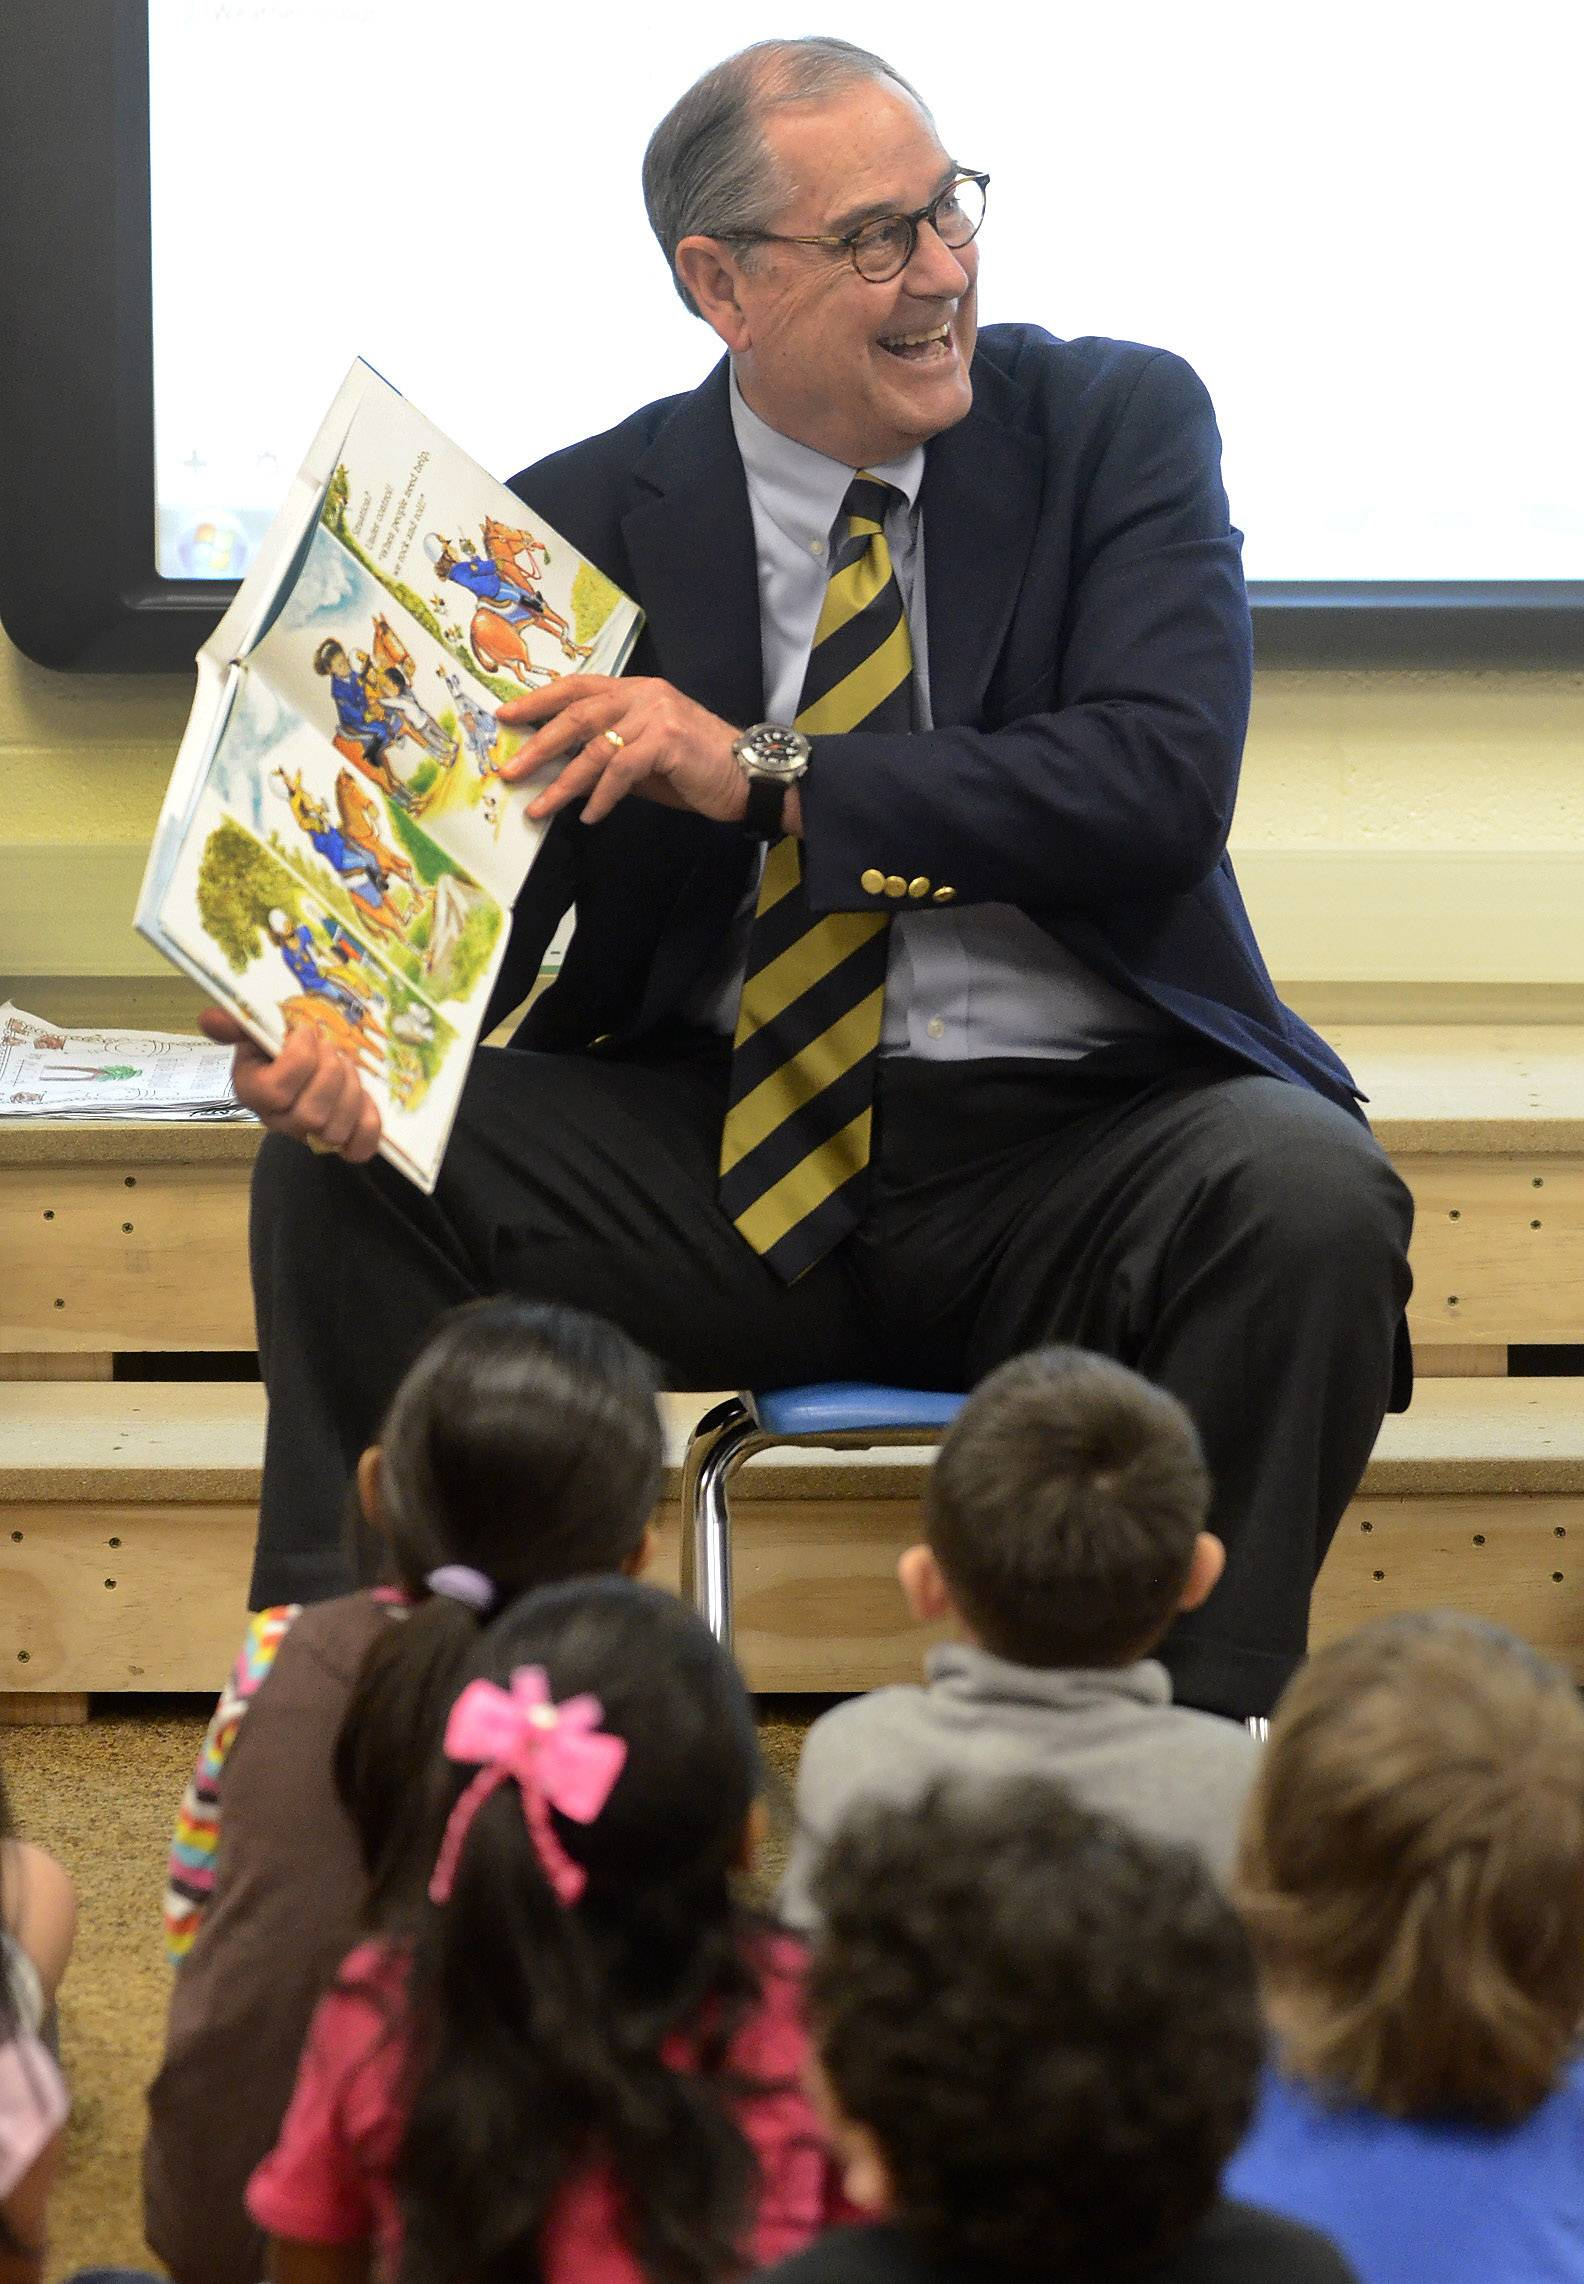 Lt. Gen. Randall Rigby, U.S. Army (Retired), of Barrington, reads a story to a preschool class at Blackwell School in Schaumburg.